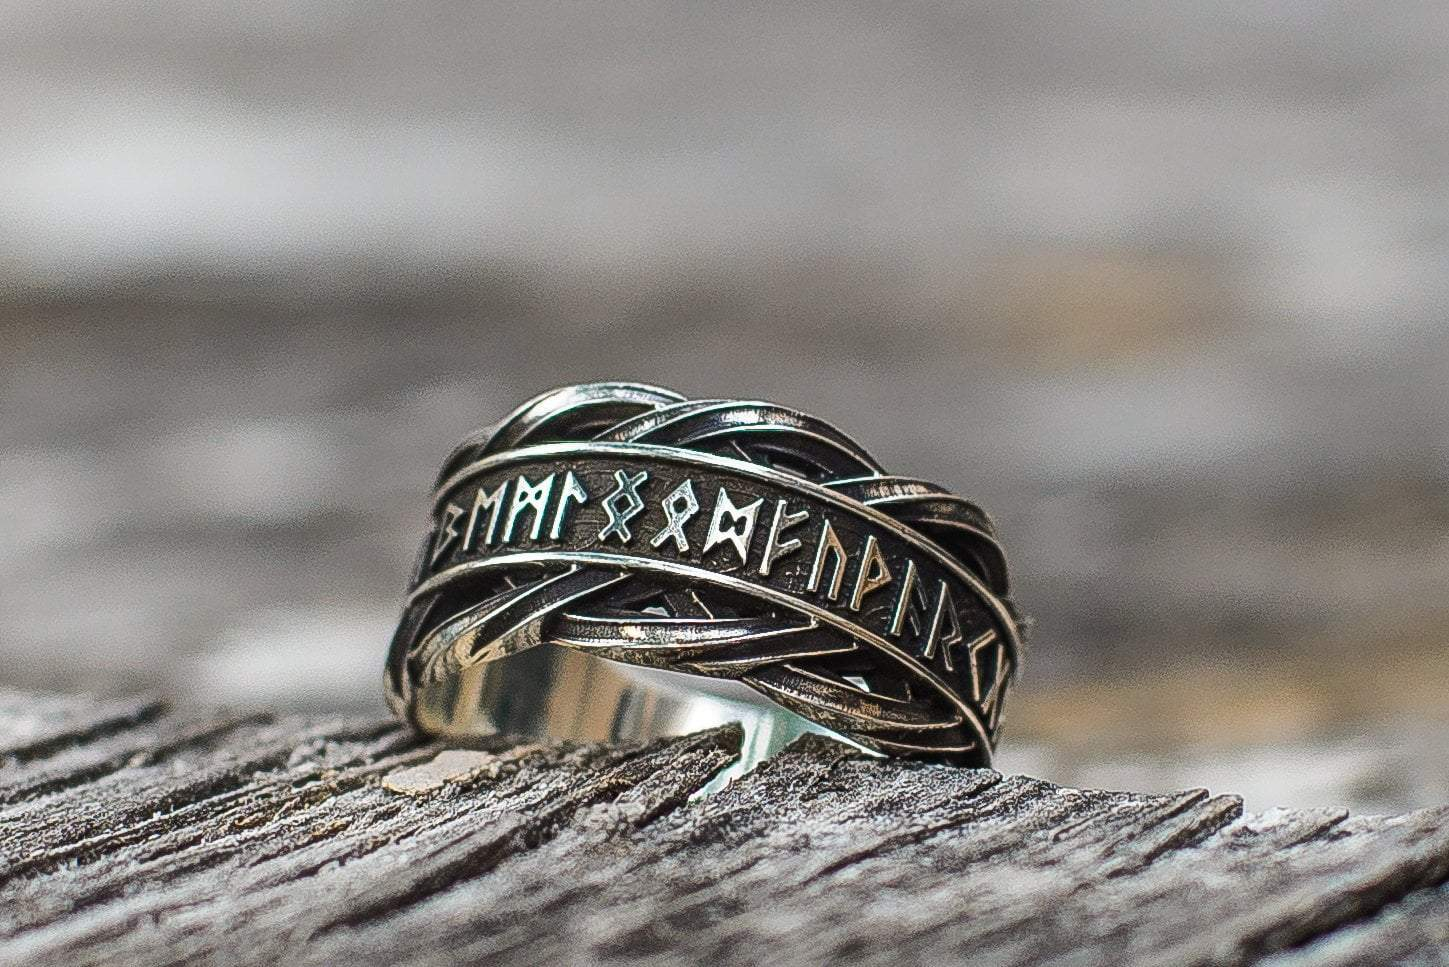 Viking Sterling Silver Ring with Elder Futhark Runes Ancient Treasures Ancientreasures Viking Odin Thor Mjolnir Celtic Ancient Egypt Norse Norse Mythology